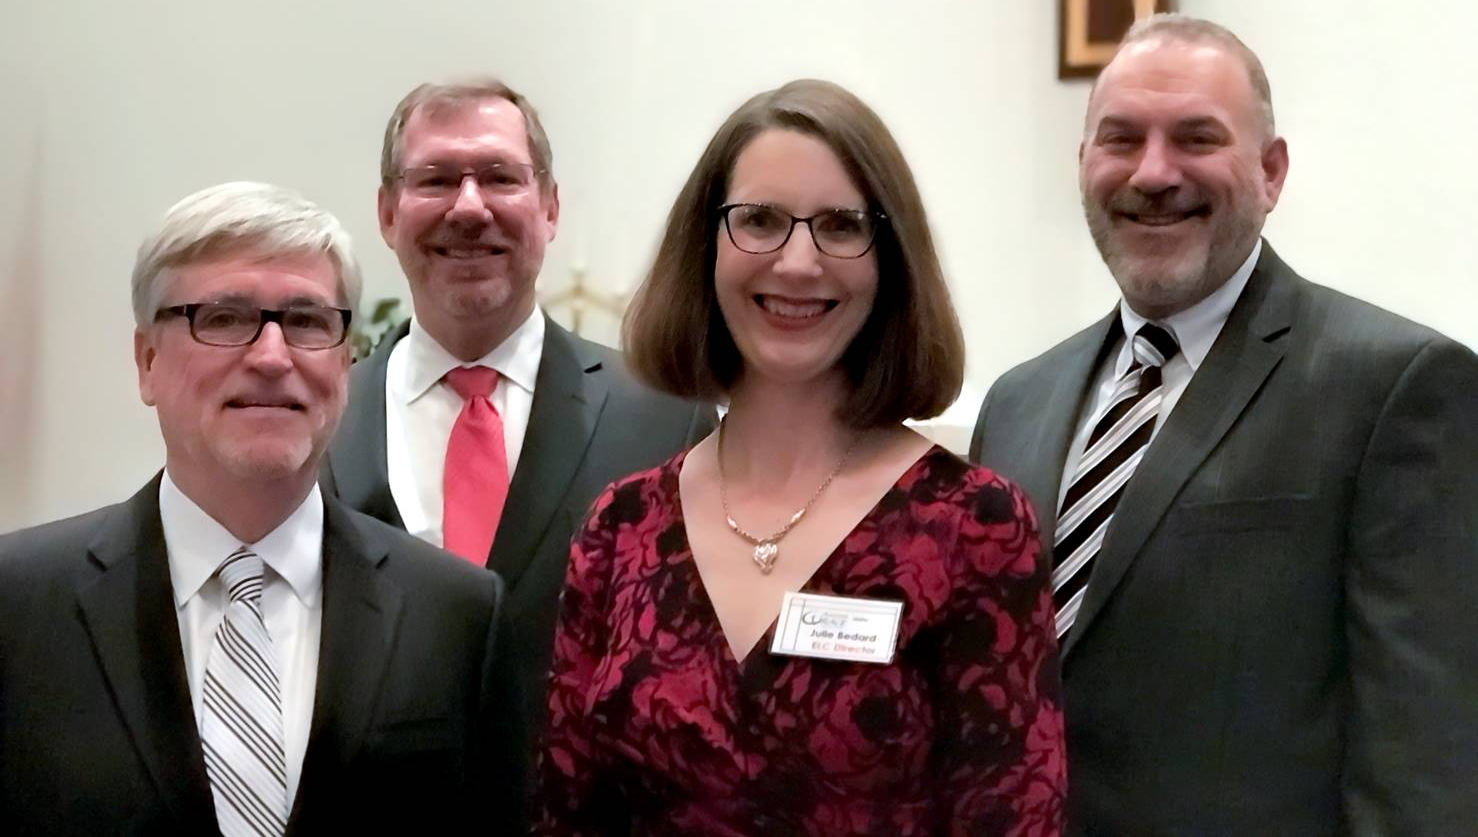 From left to right: Mark Brink-Executive Director of School Ministries & Youth Ministry; James Rockey-Pastor of Amazing Grace Lutheran Church ; Julie Bedard-Director of Early Learning Center and Greg Walton-President of the Florida-Georgia District, Lutheran Church-Missouri Synod.